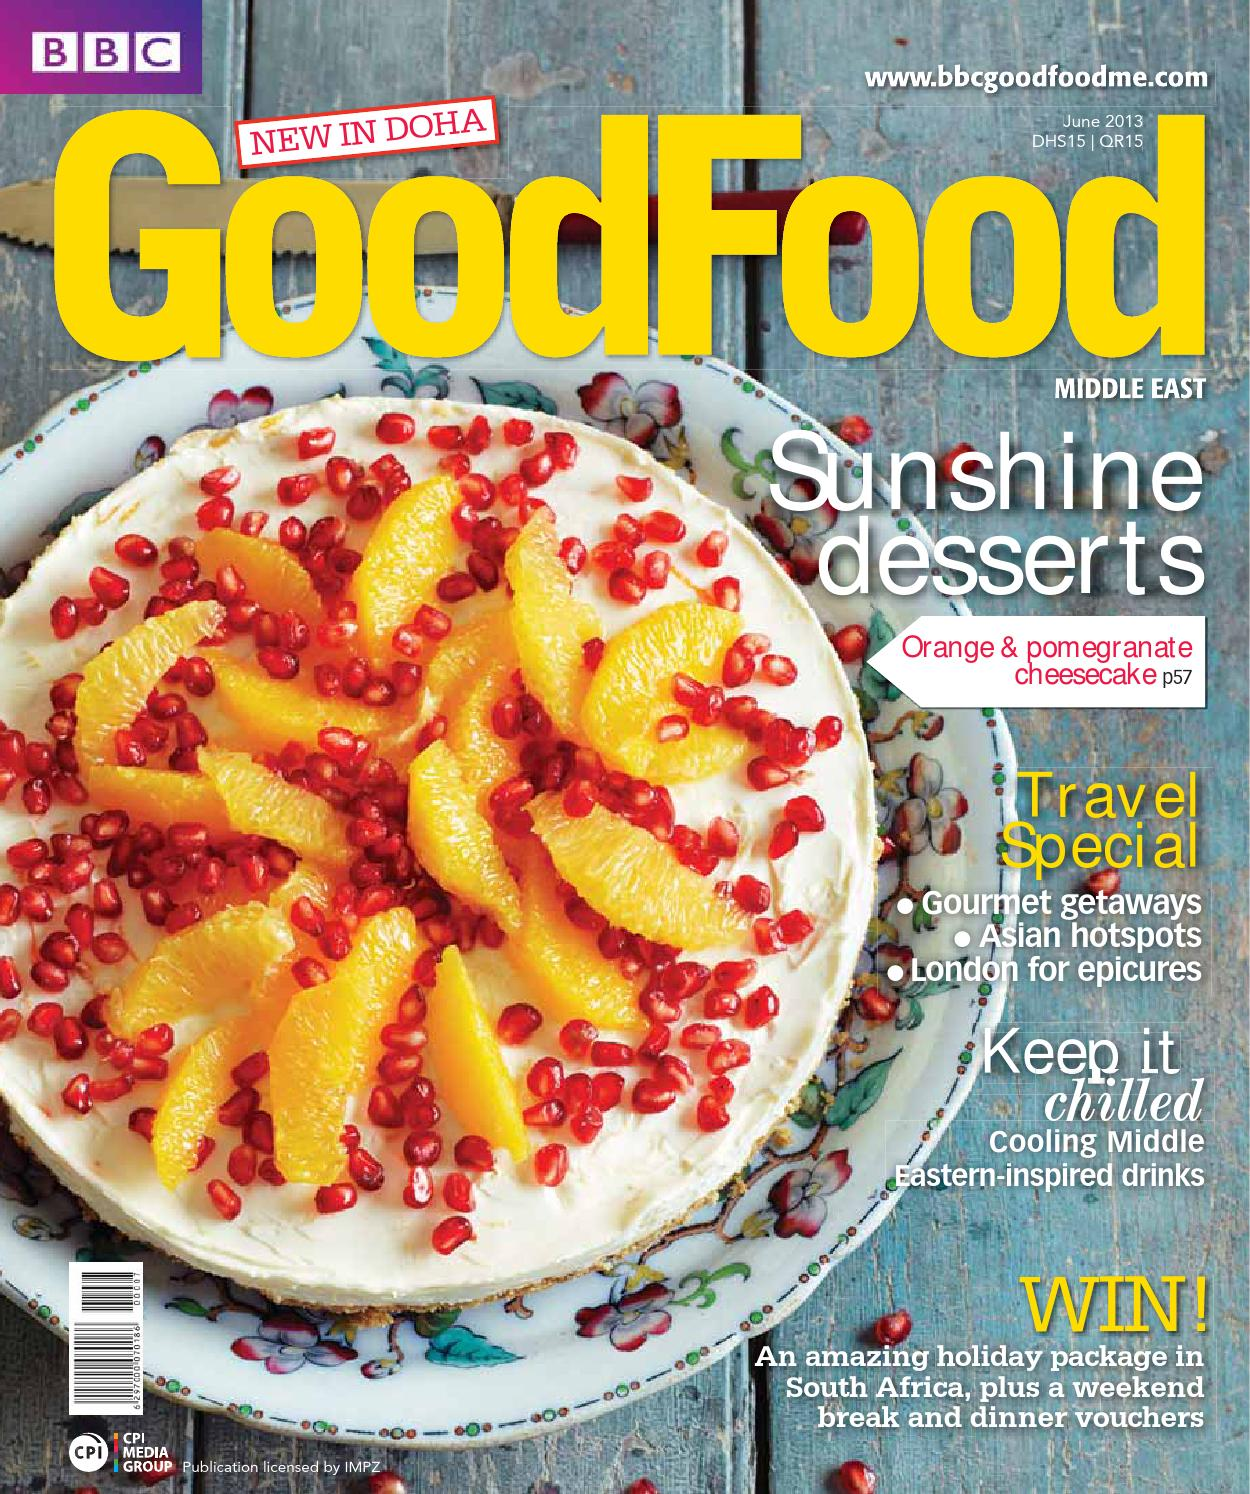 Bbc good food middle east magazine june 2013 by bbc good food me bbc good food middle east magazine june 2013 by bbc good food me issuu forumfinder Gallery